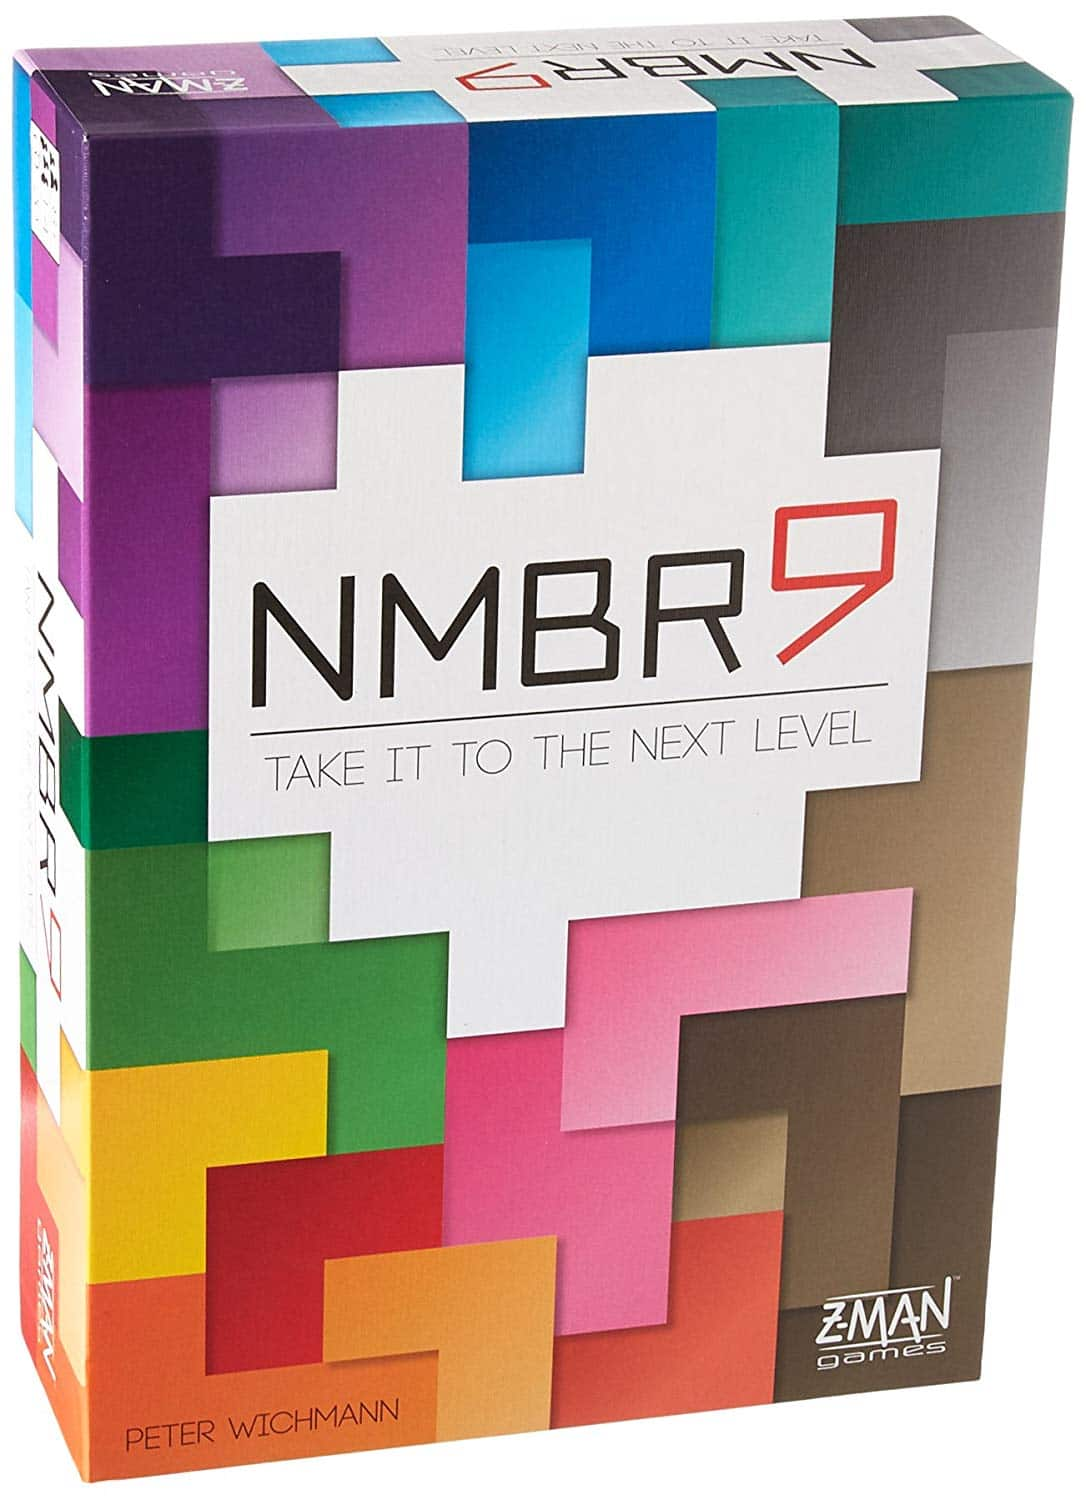 Nmbr 9 Board Game - $11.99